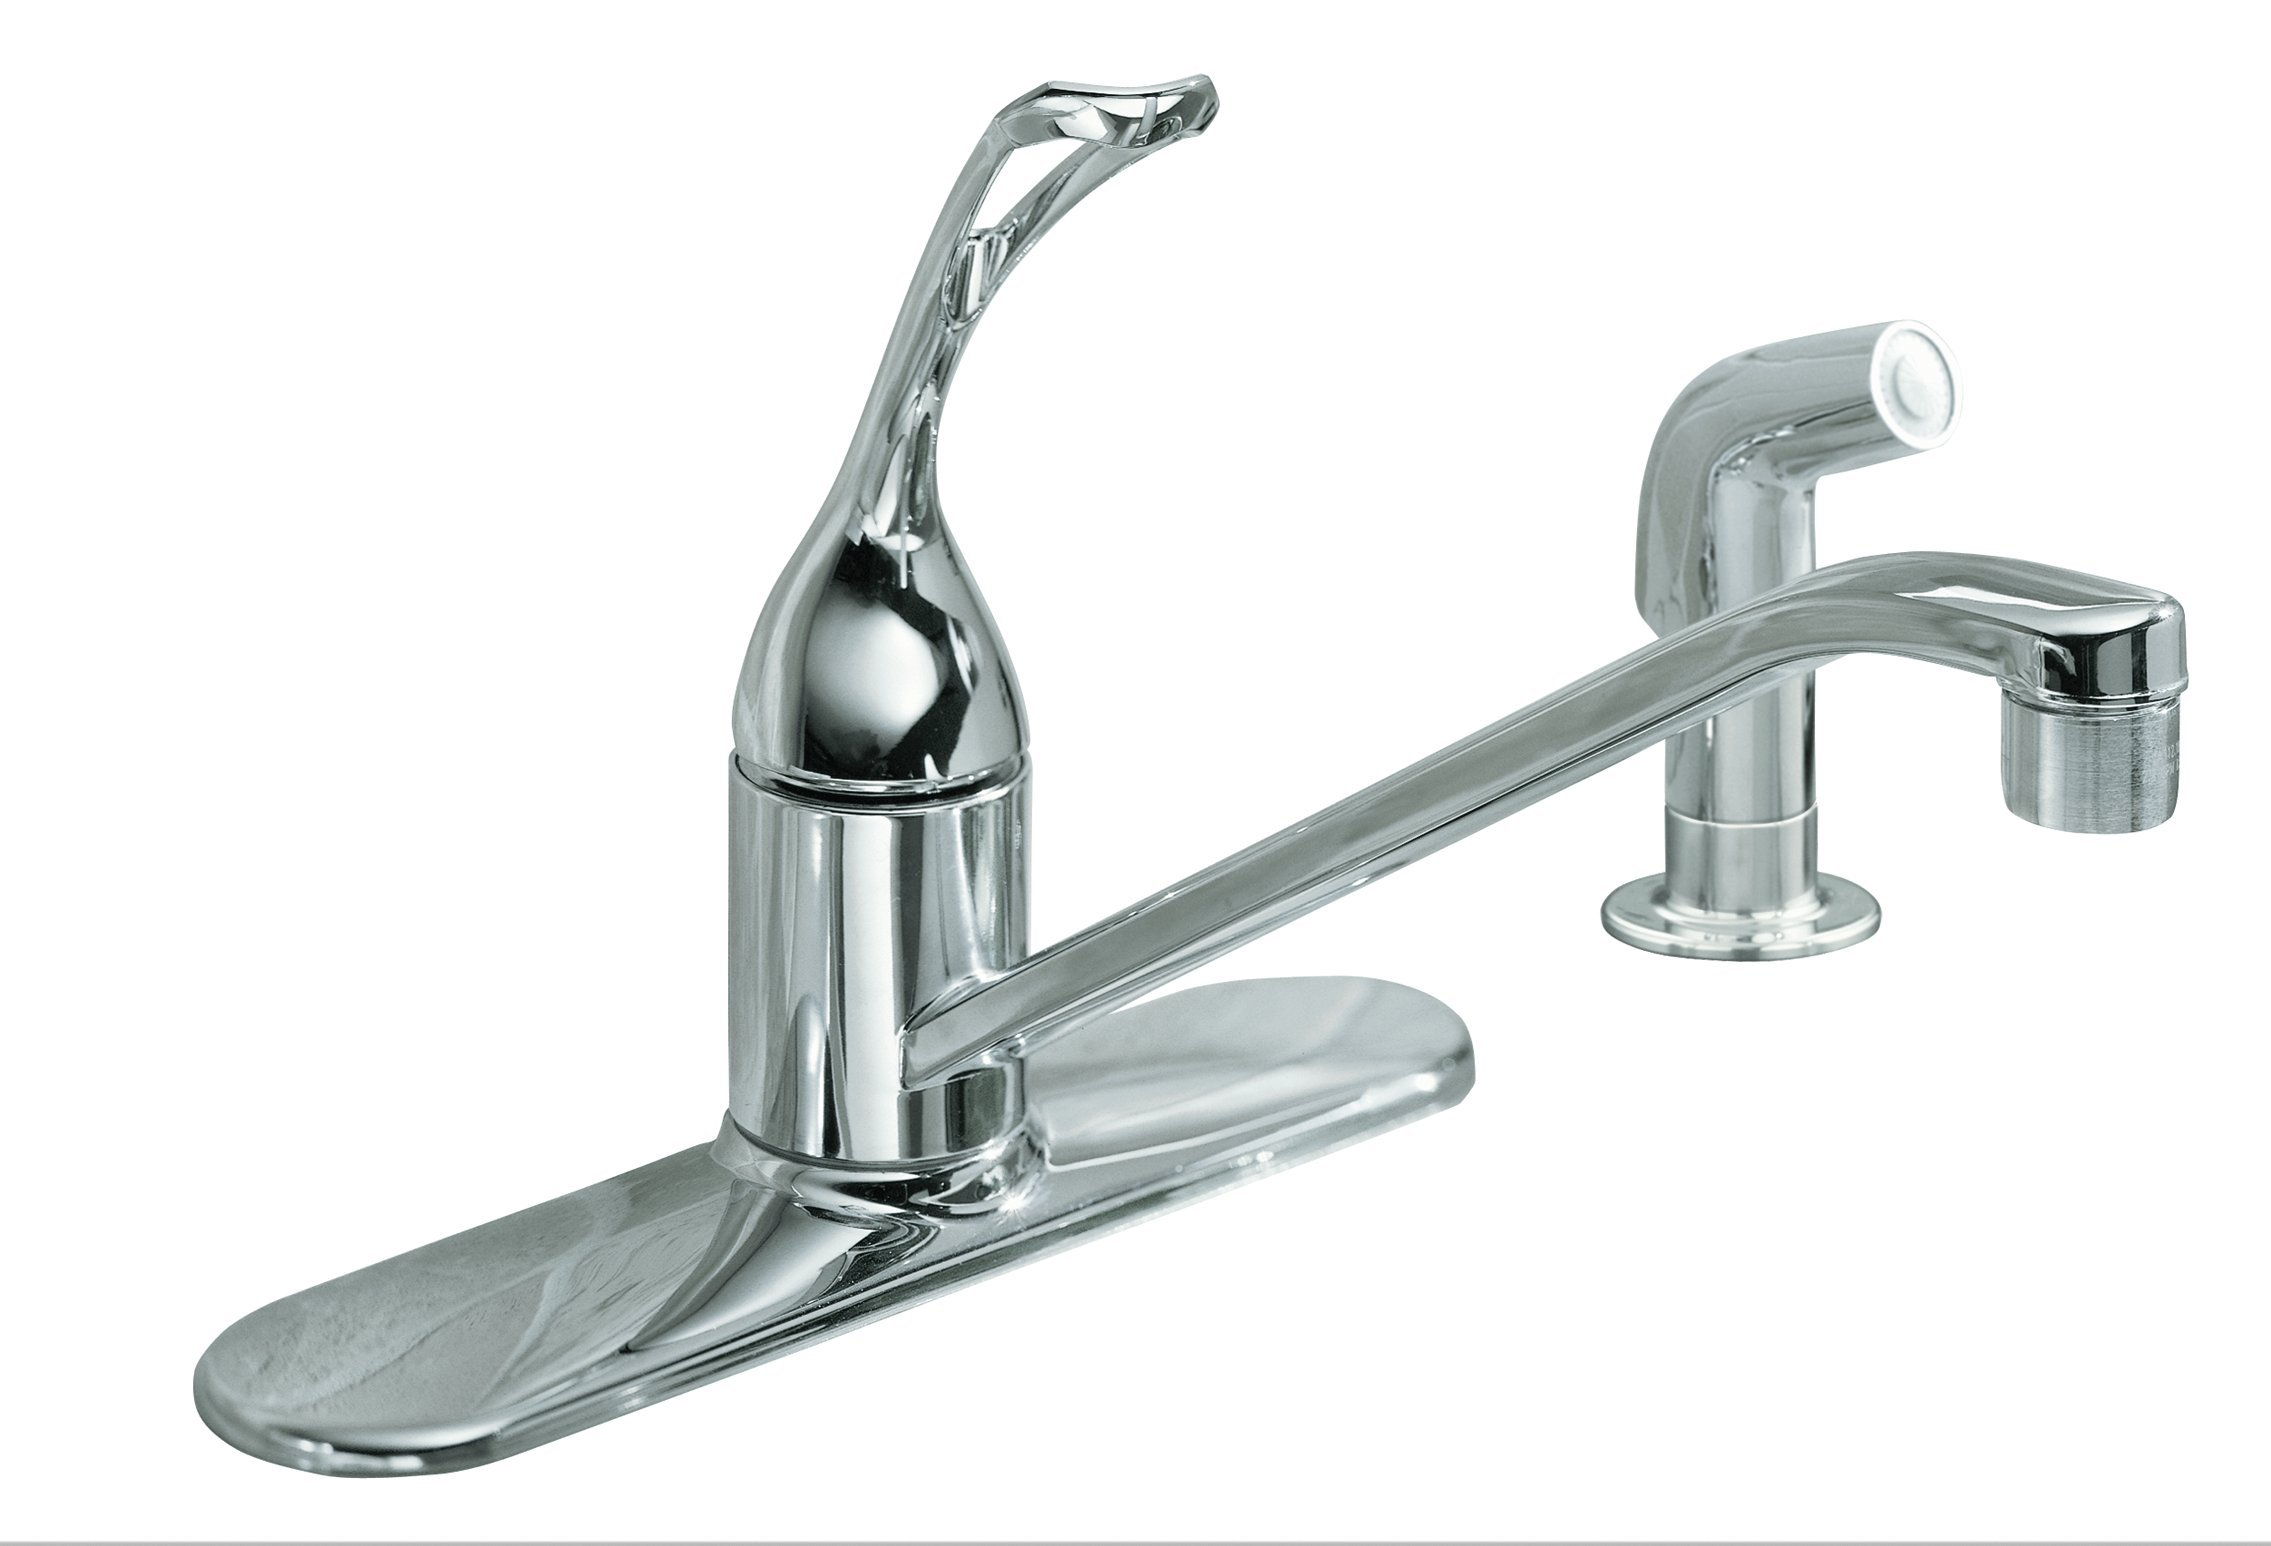 Awesome moen single handle kitchen faucet installation khetkrong - Moen kitchen faucet installation ...